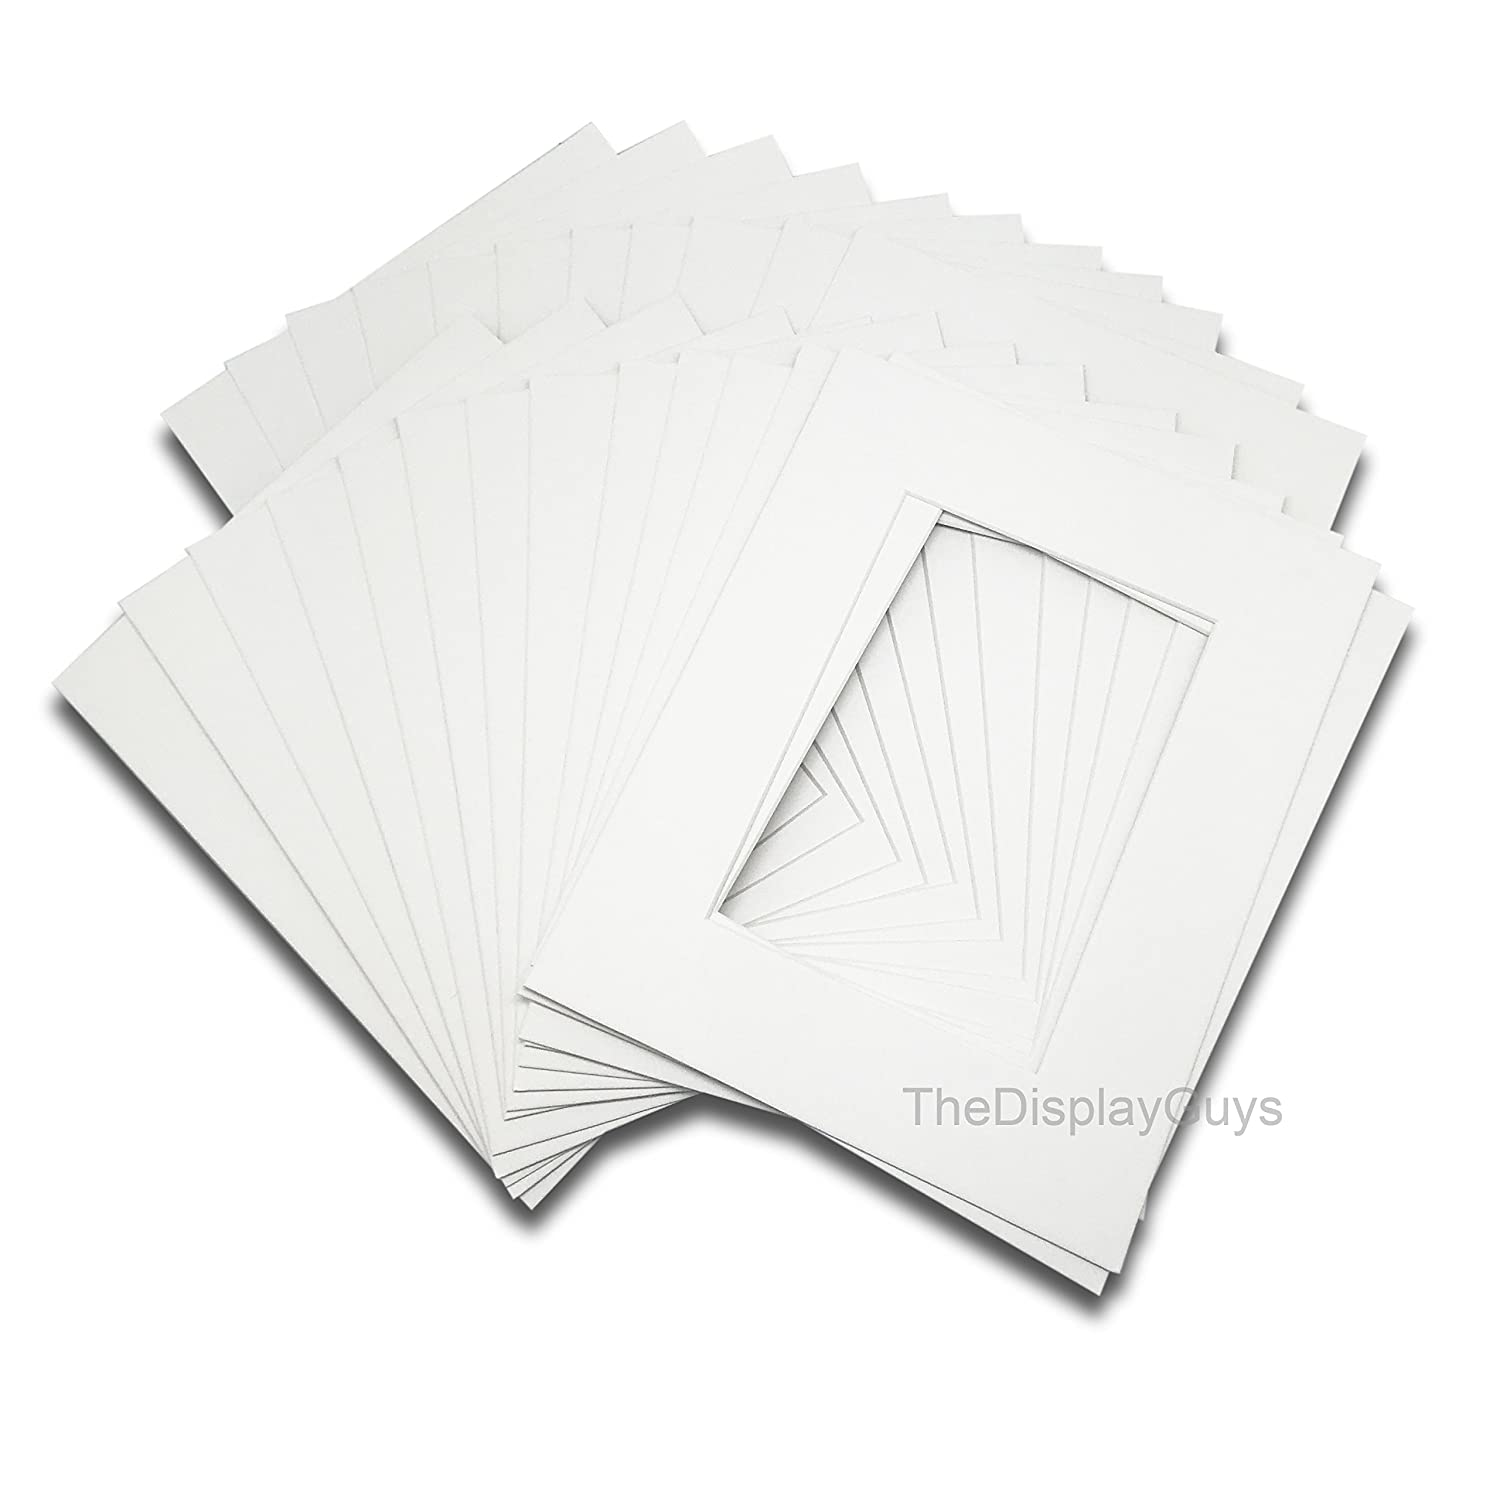 The Display Guys, Pack of 10pcs, Acid-Free White Pre-Cut 11x14 inches Picture Mat for 8x10 Photo with White Core Bevel Cut Frame Mattes 4336896142